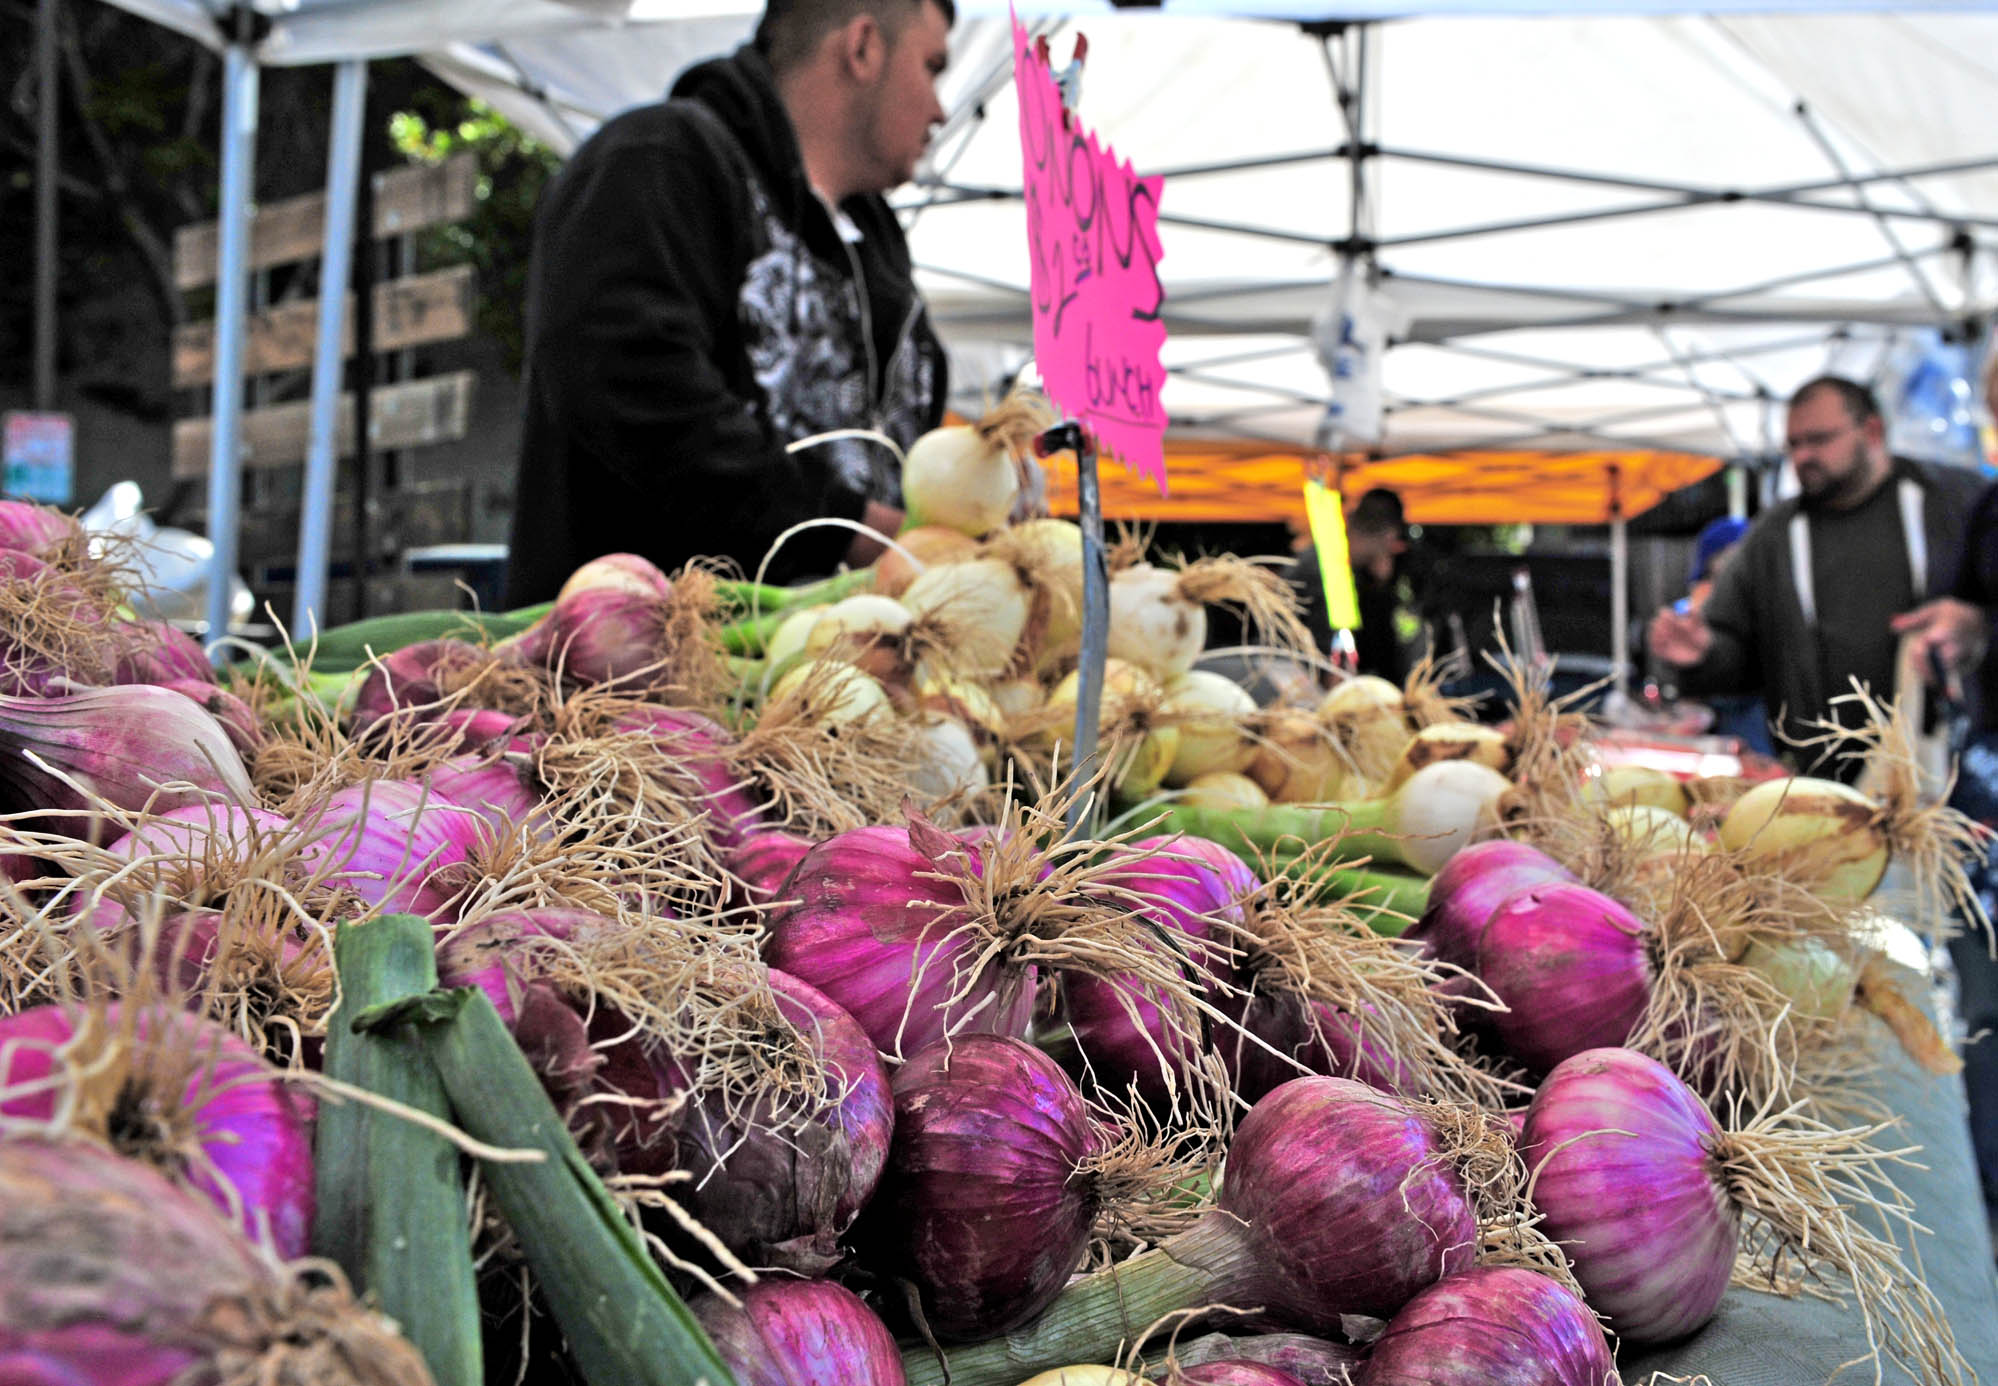 The Glen Park Village Farmer's Market is a place to meet up with neighbors and, of course, stock up on fresh, locally grown produce.